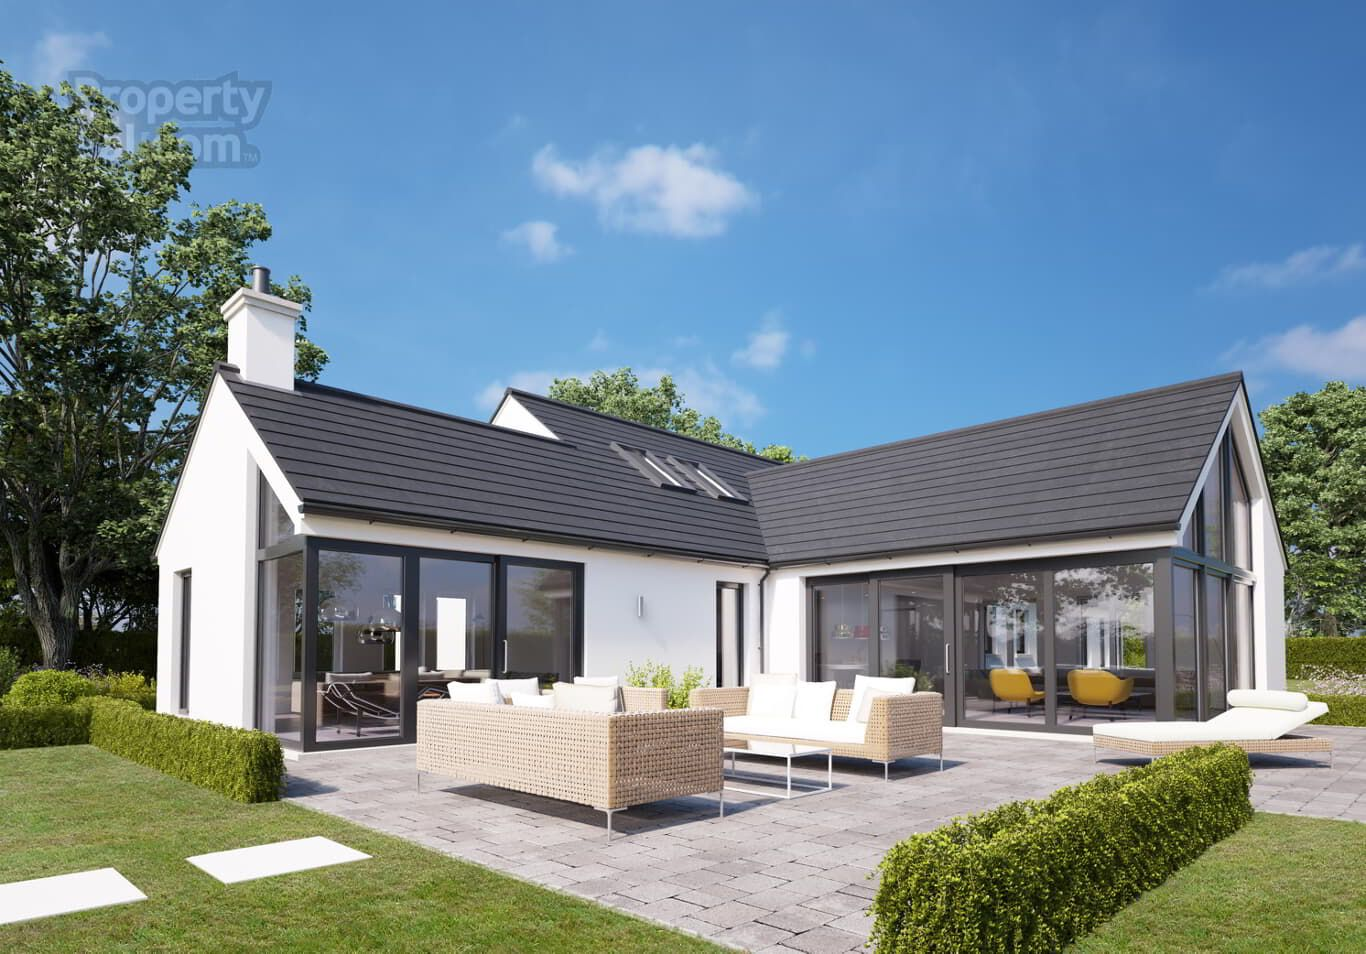 Exterieur neues wohndesign 2018 poplar wood gortraney road upper ballinderry lisburn